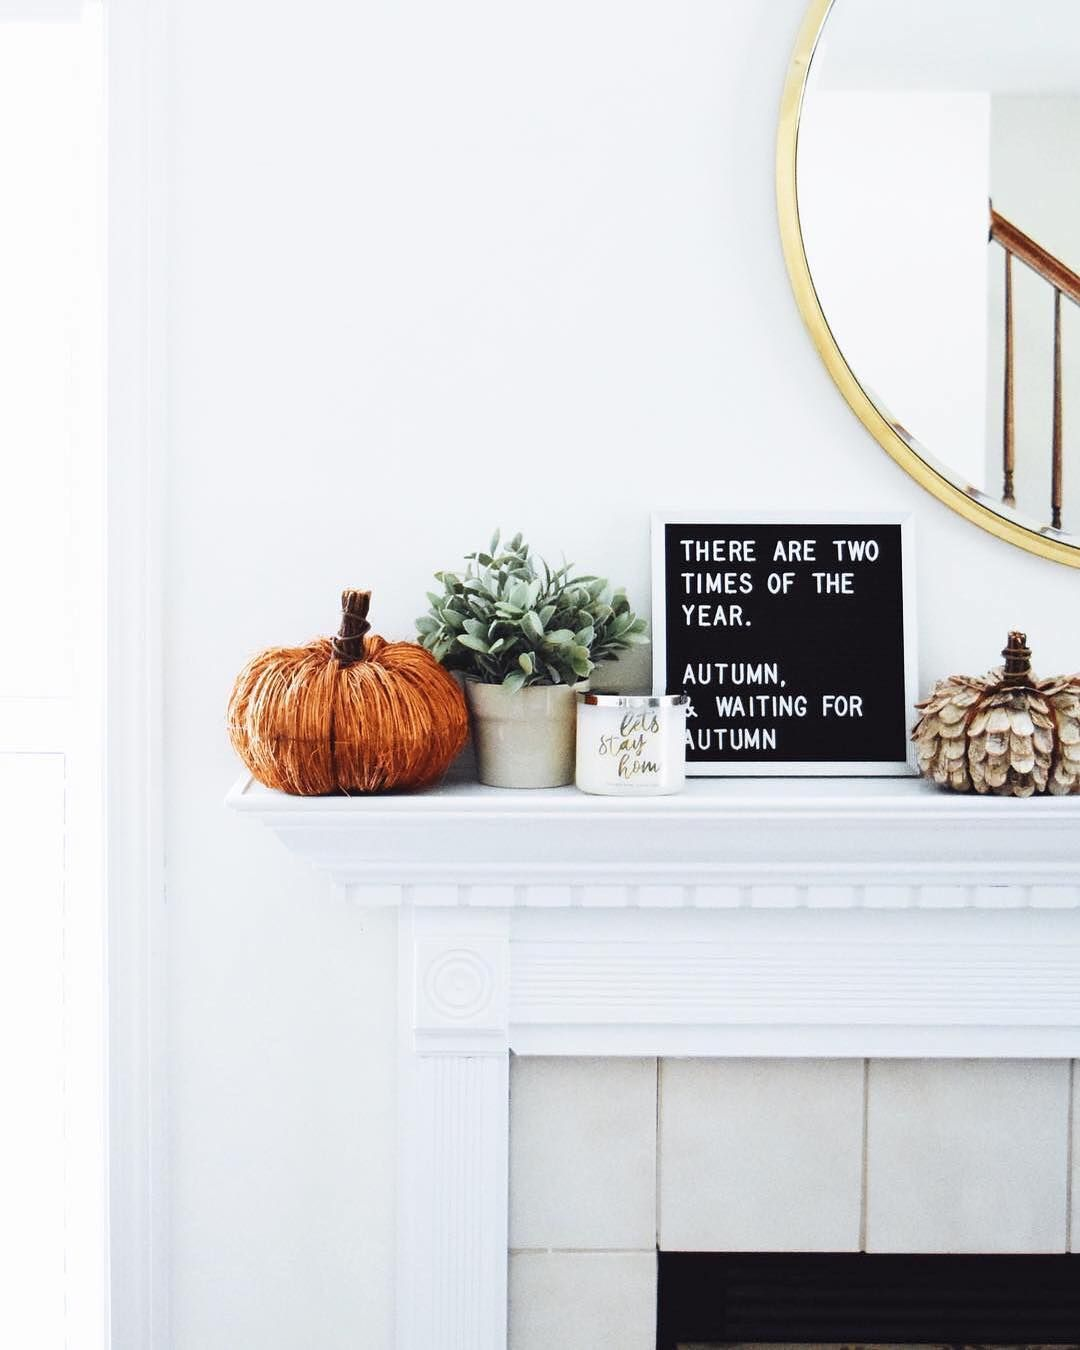 Autumn vibes | Home Decor | Pinterest | Autumn, Letter board and ...